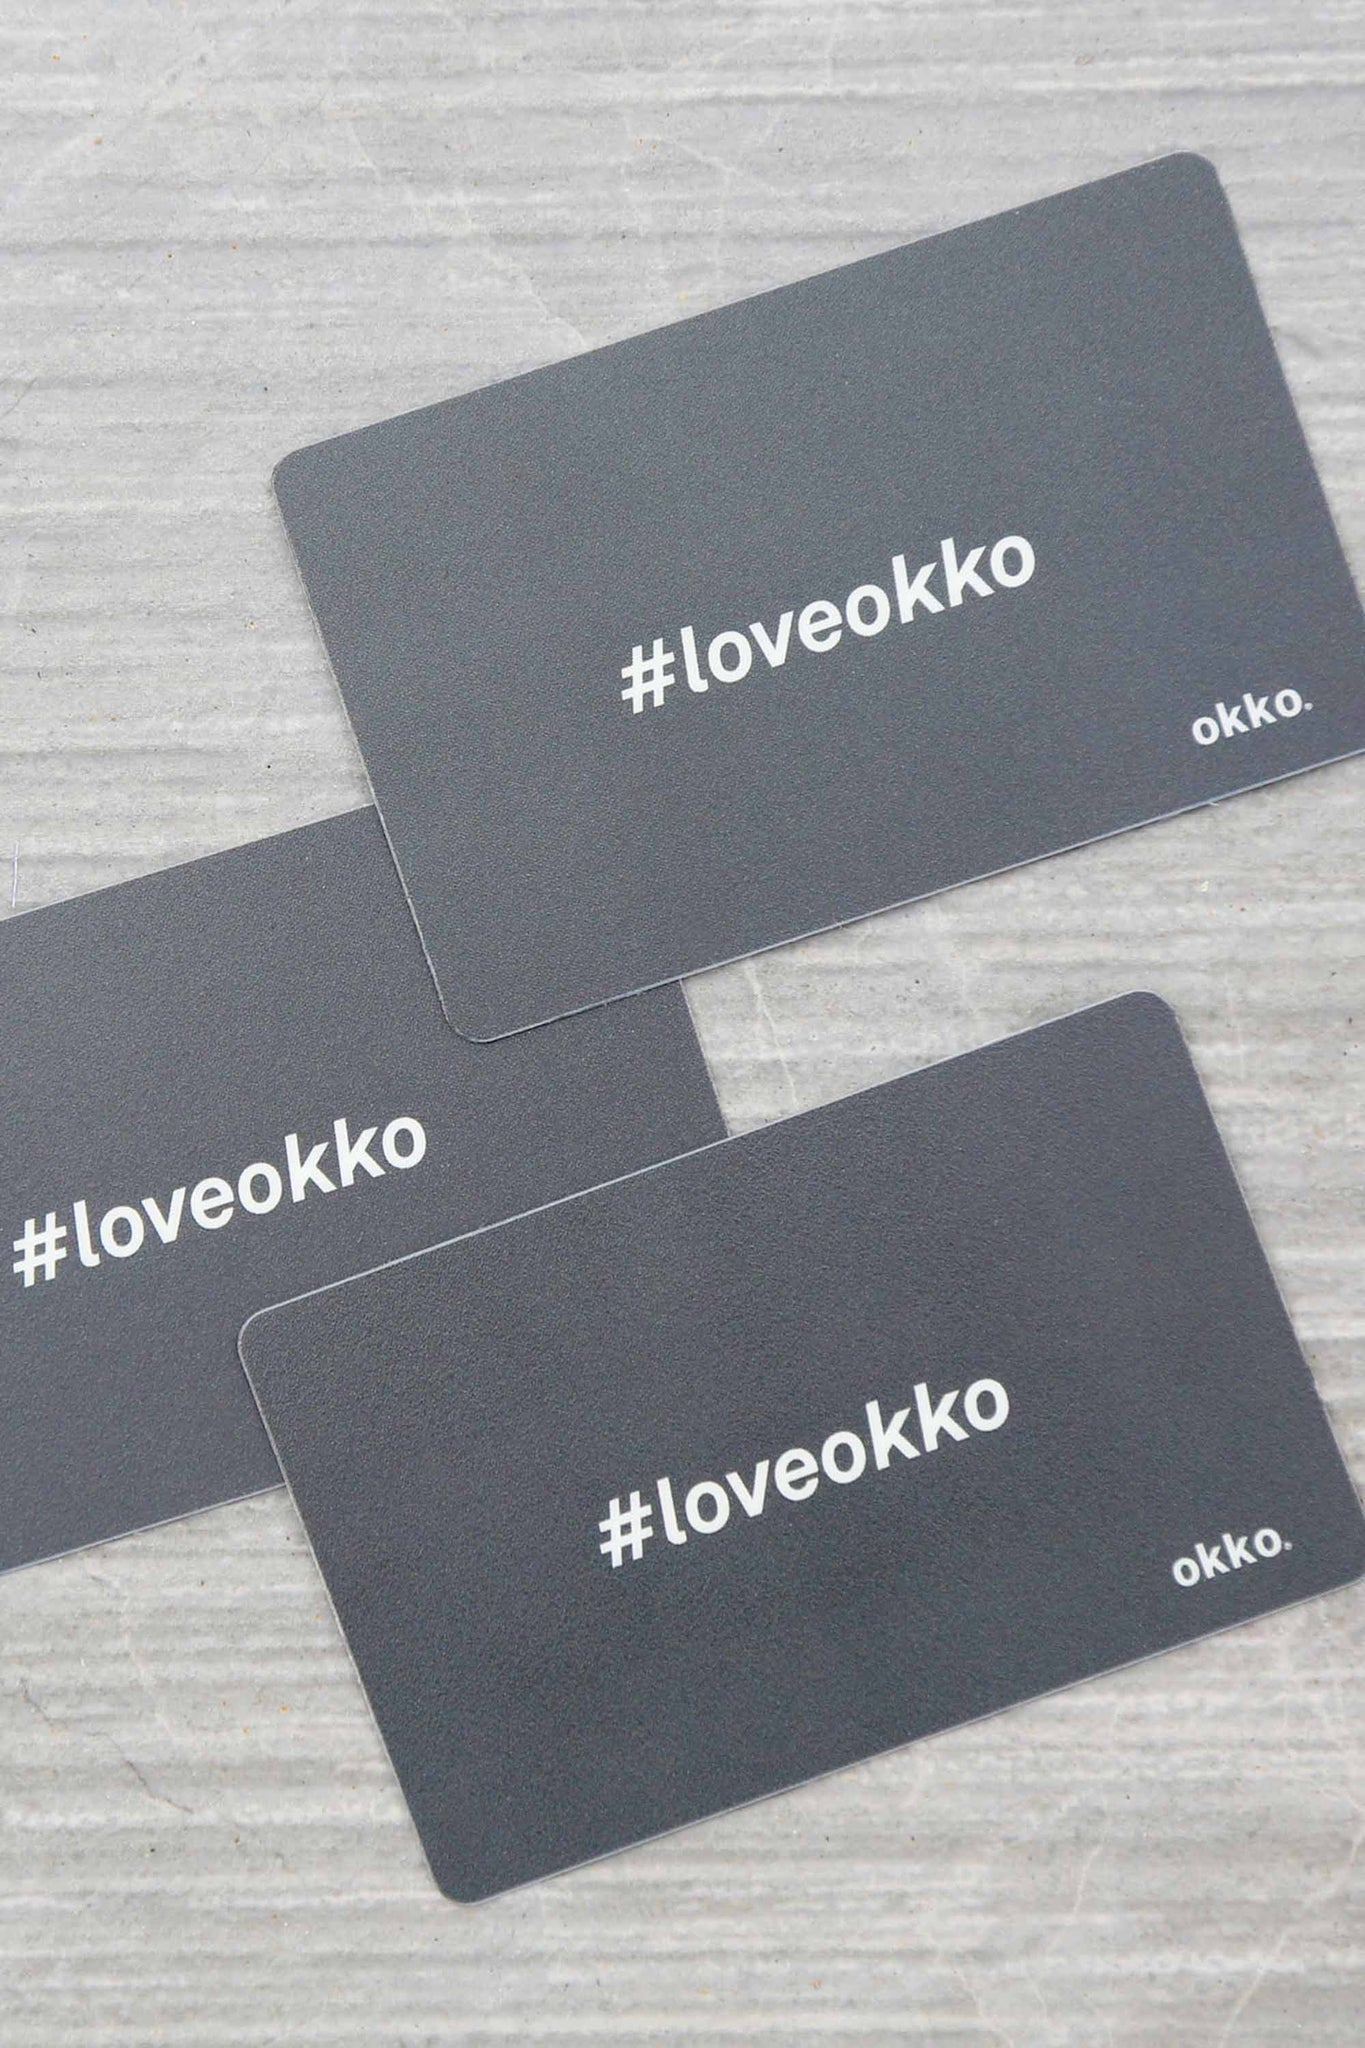 okko gift card digital